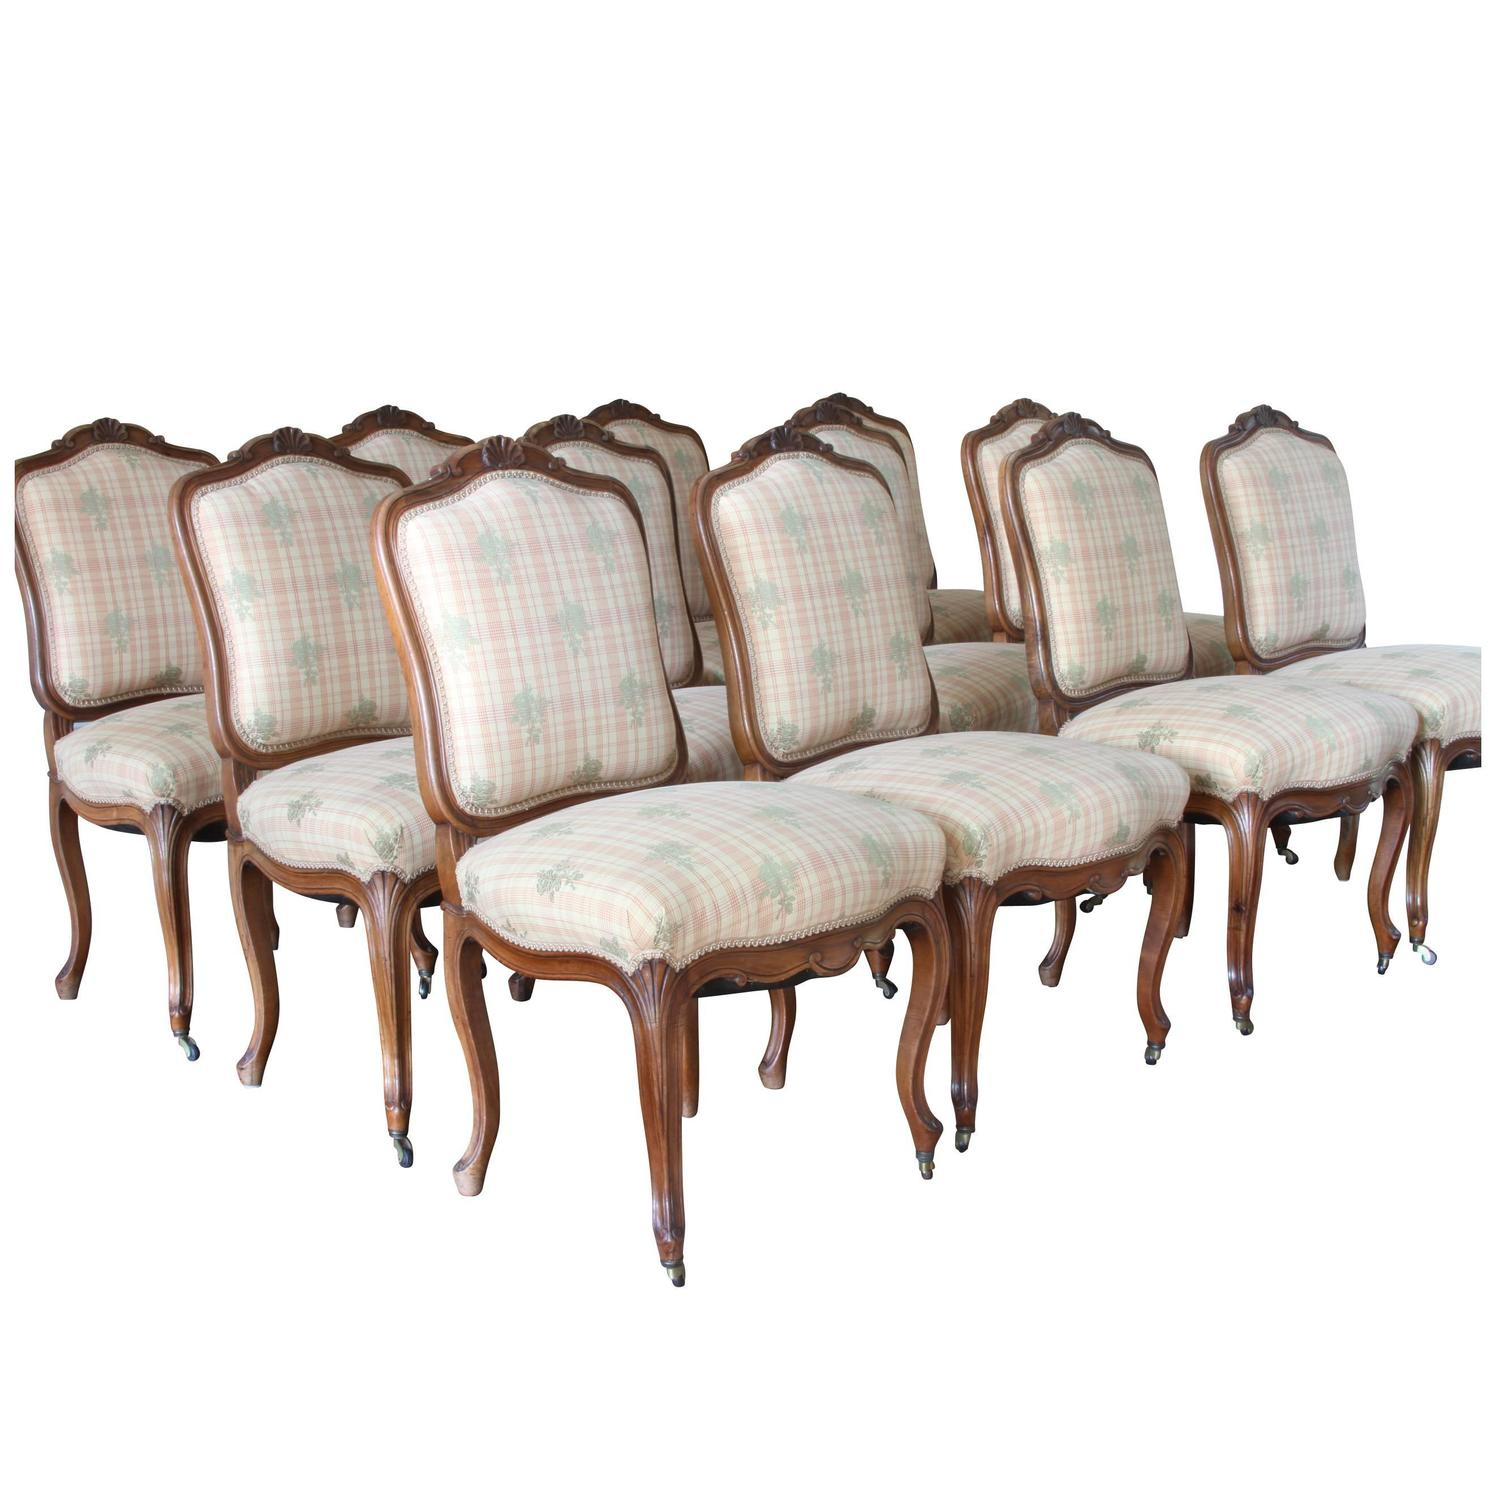 Set of 12 Antique French Carved Fruitwood Dining Chairs at 1stdibs